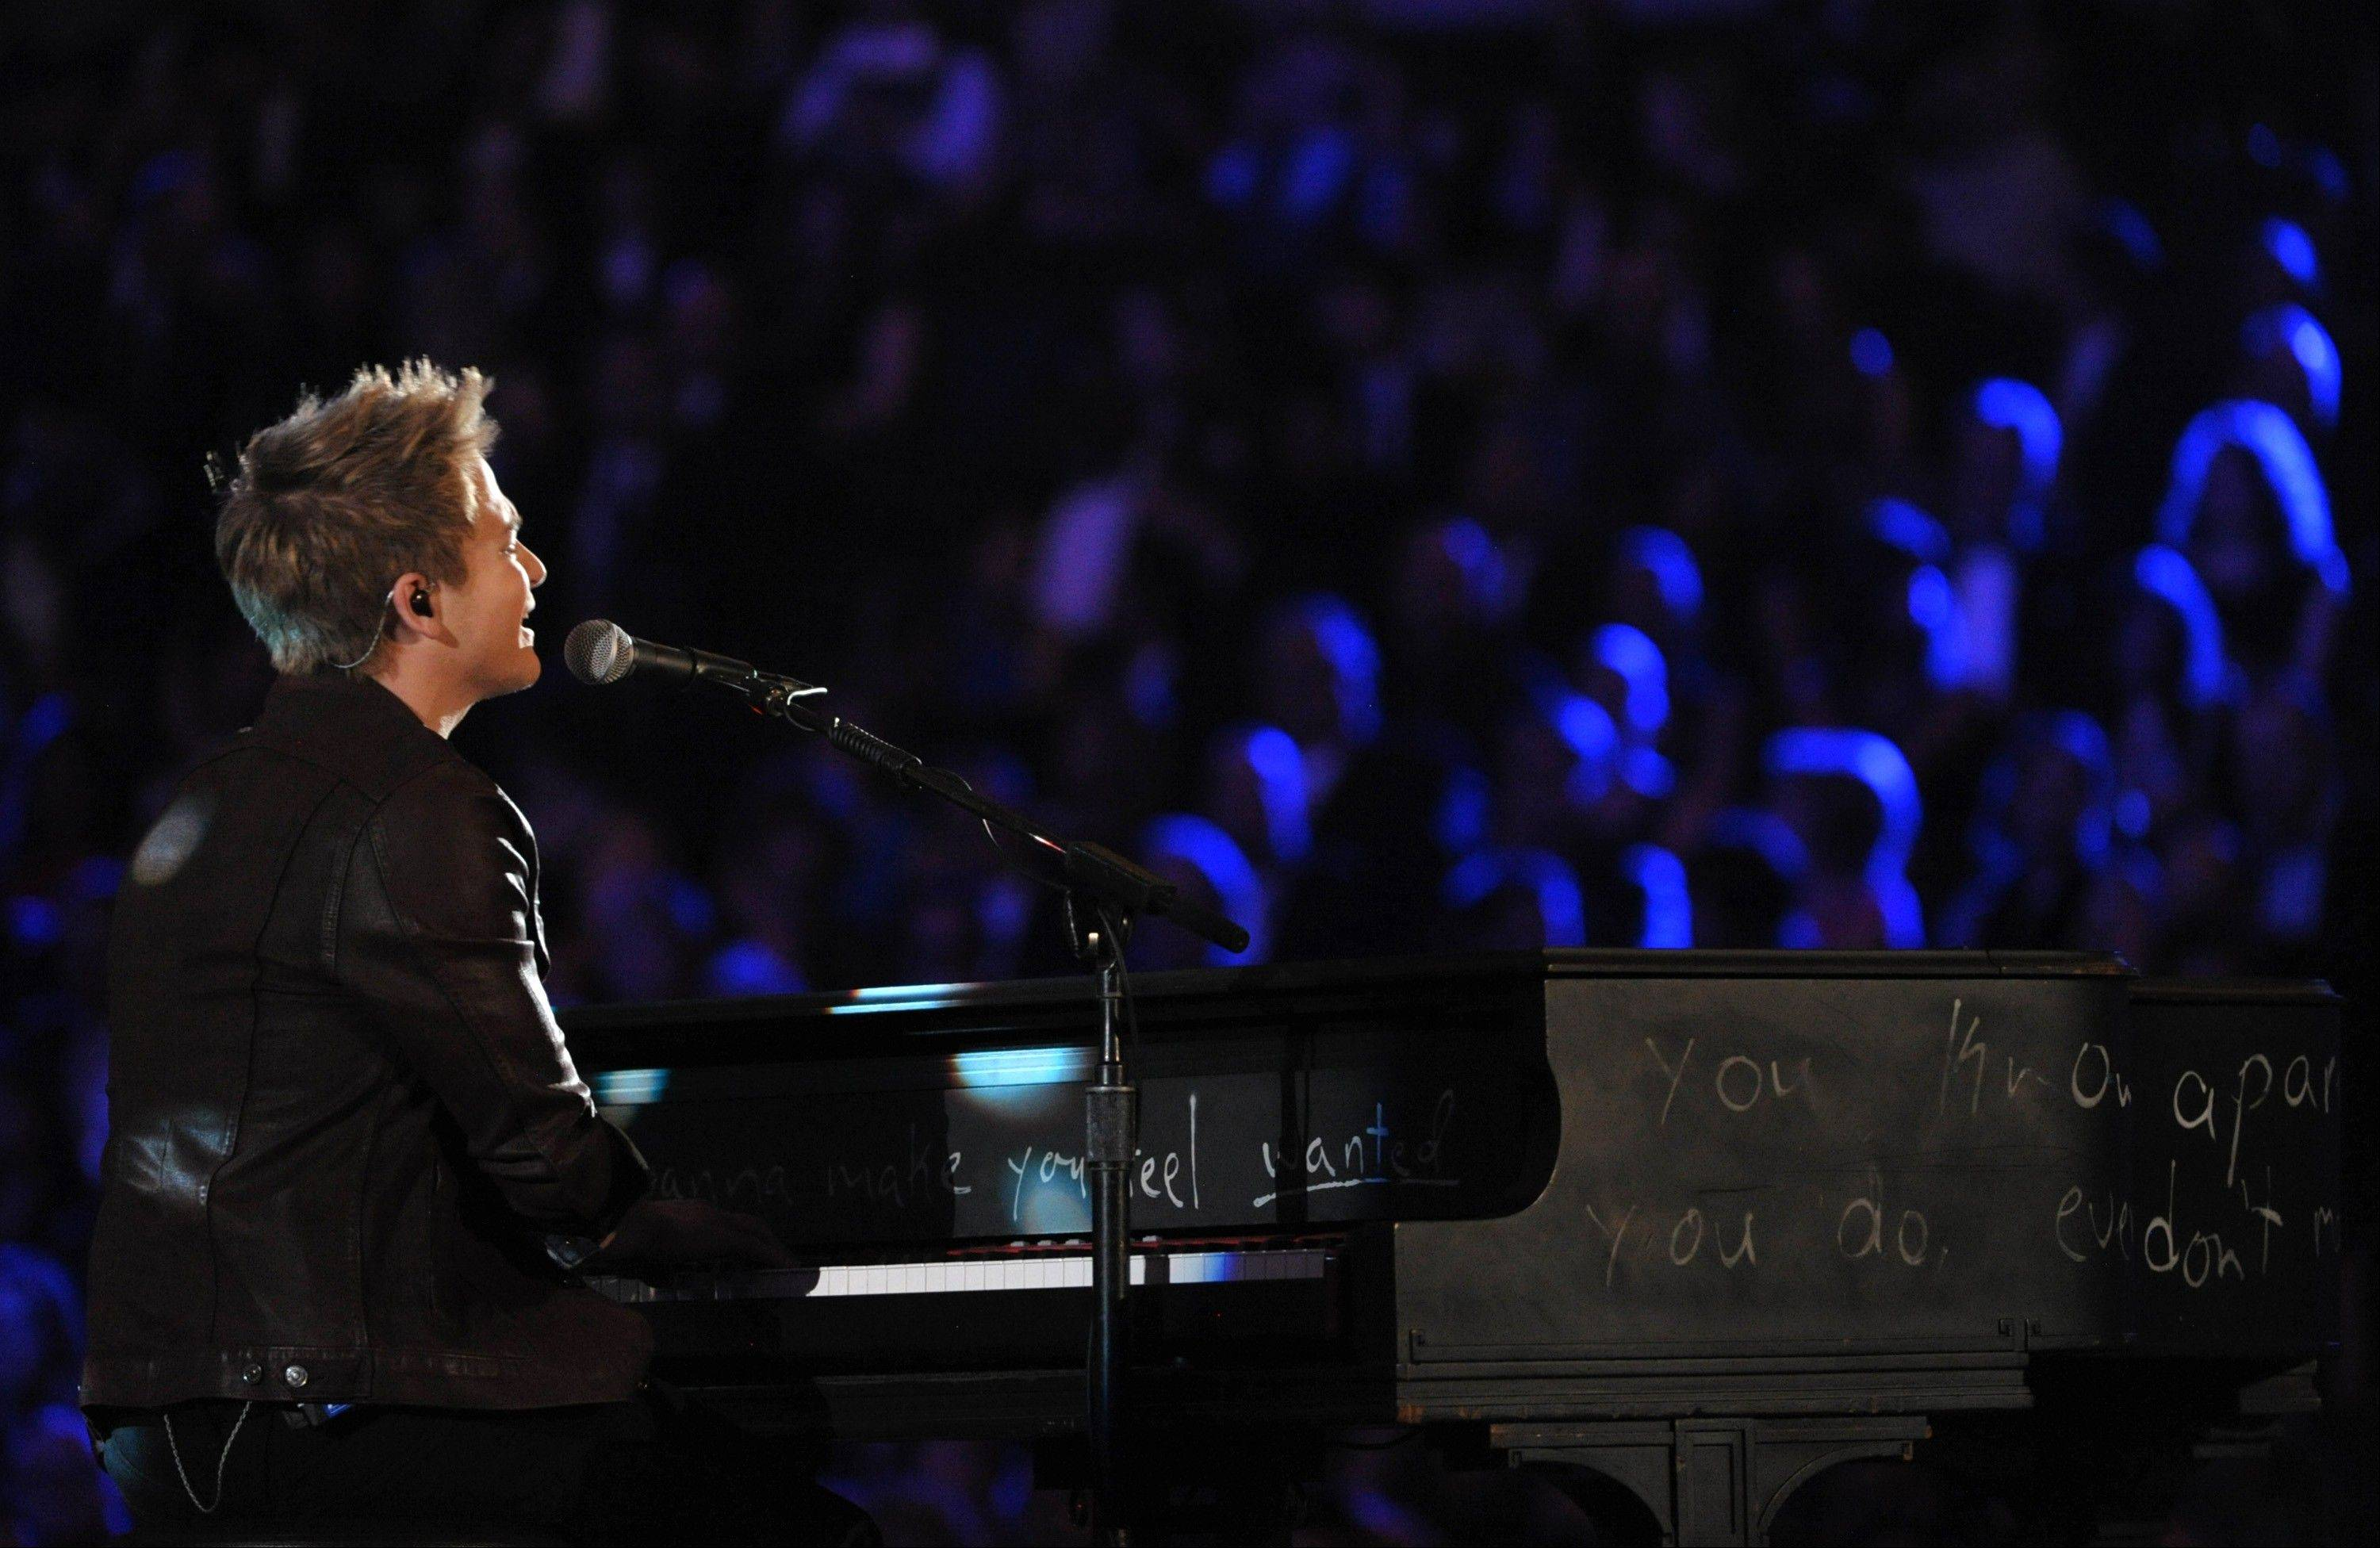 Hunter Hayes performs at the 55th annual Grammy Awards on Sunday, Feb. 10, 2013, in Los Angeles.